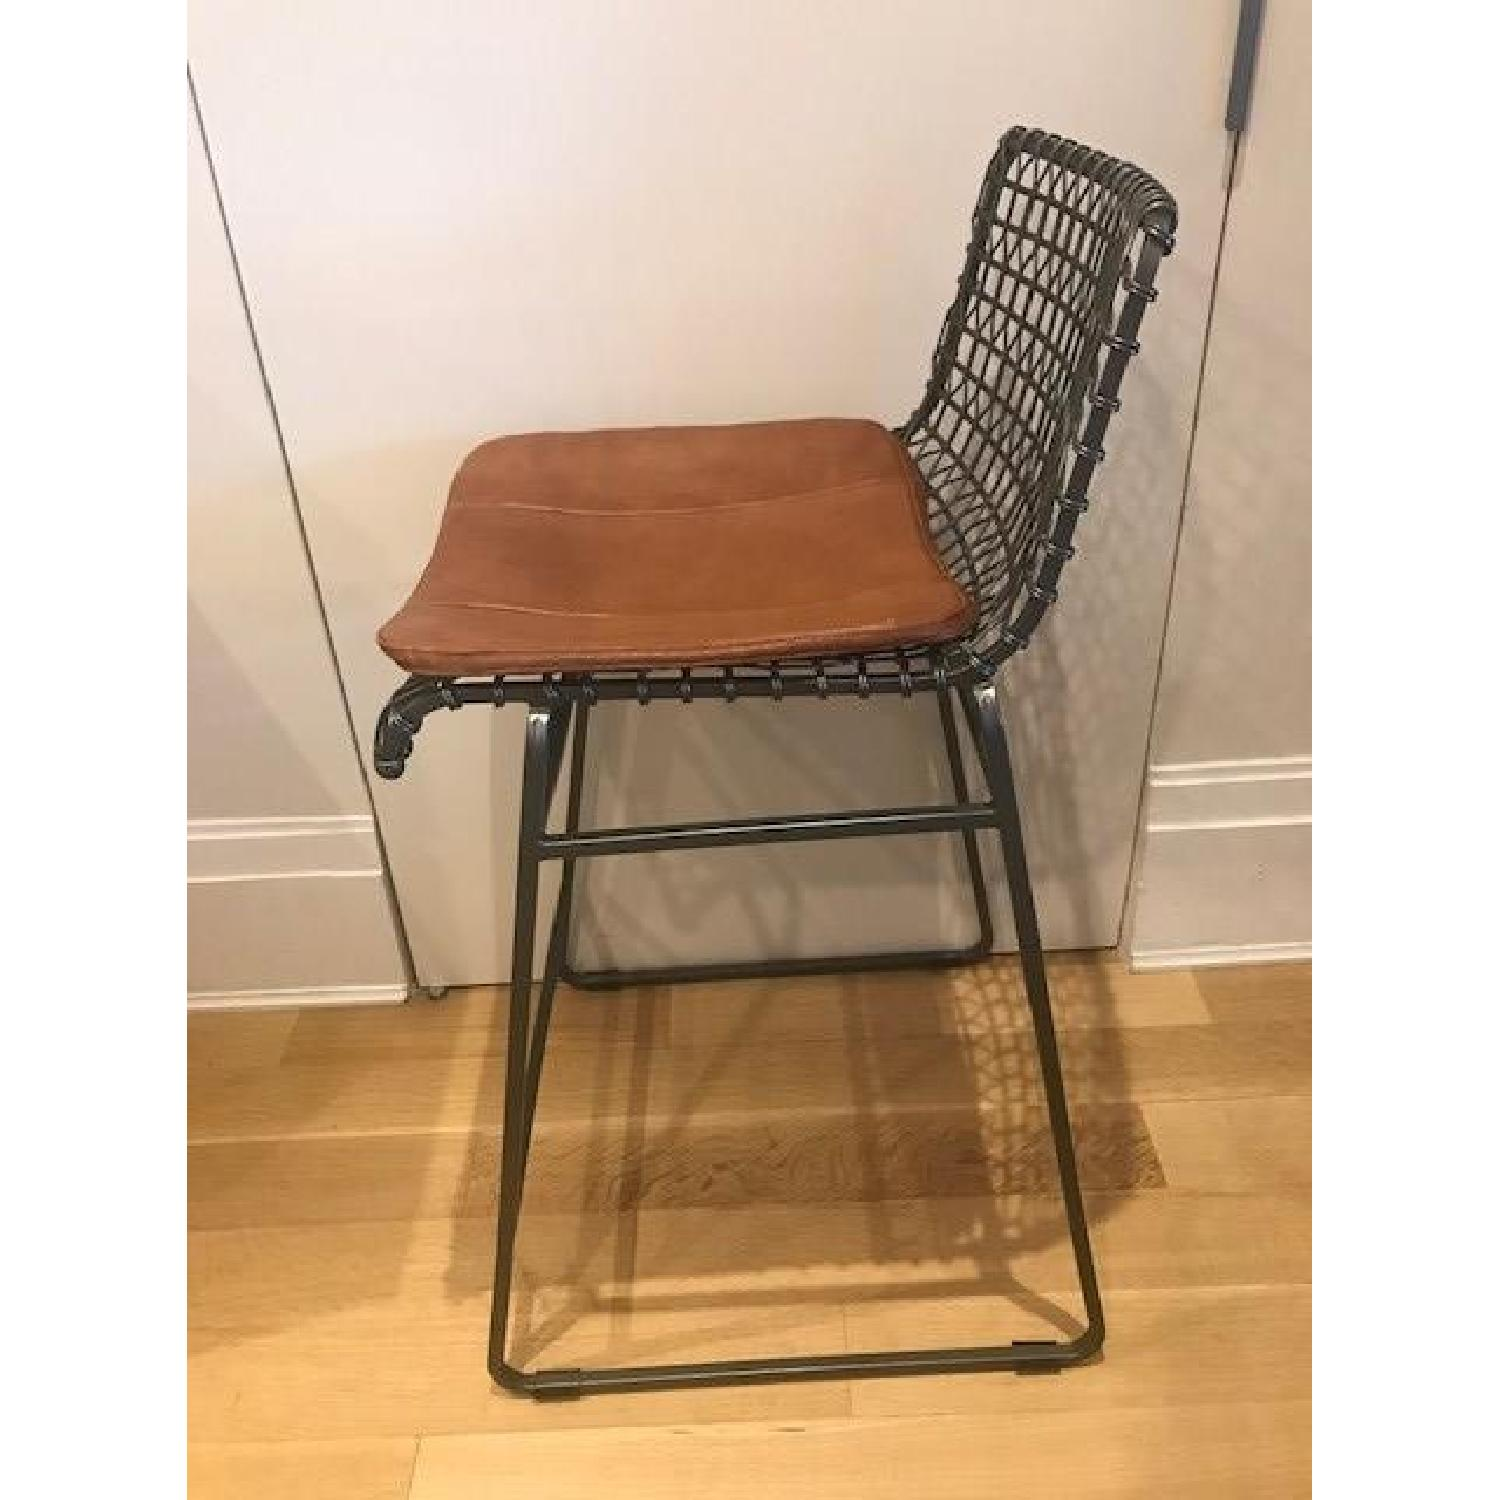 Crate & Barrel Tig Counter Stools w/ Brown Leather Seats-2